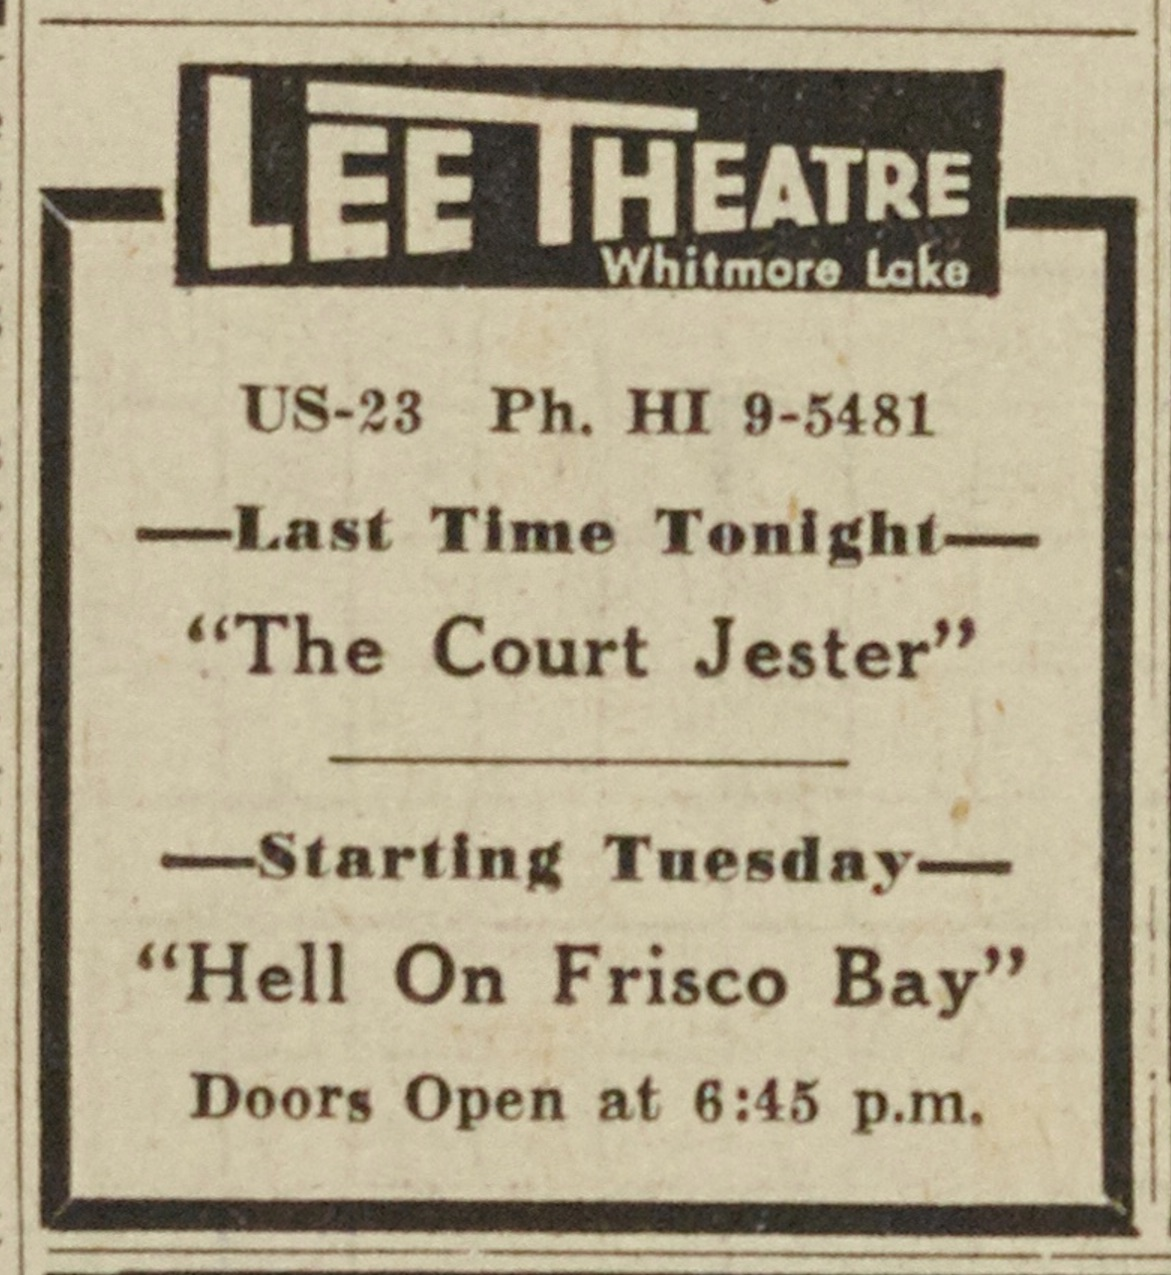 Lee Theatre image